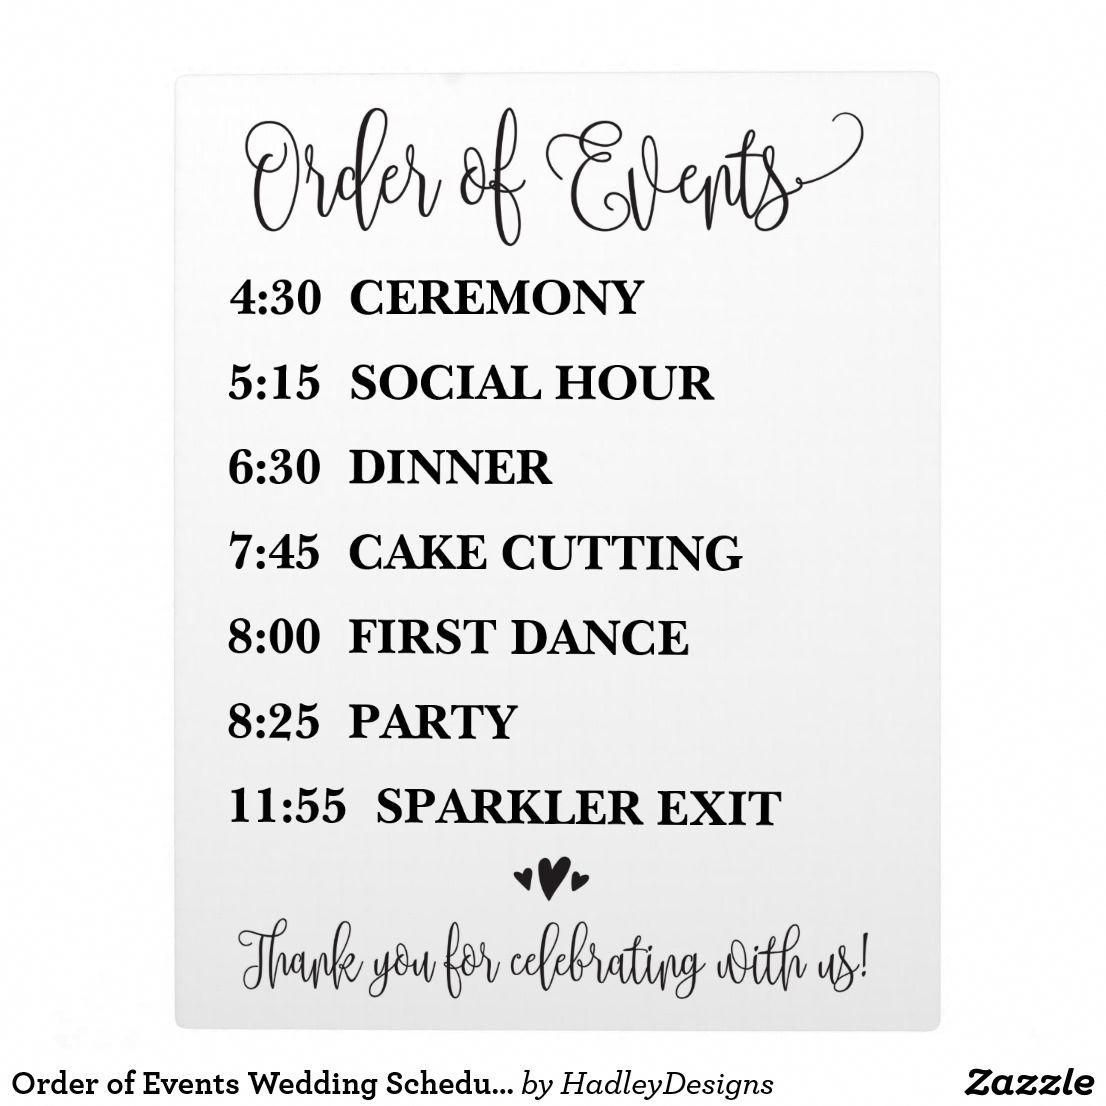 Order Of Events Wedding Schedule Sign Budgetweddingideas